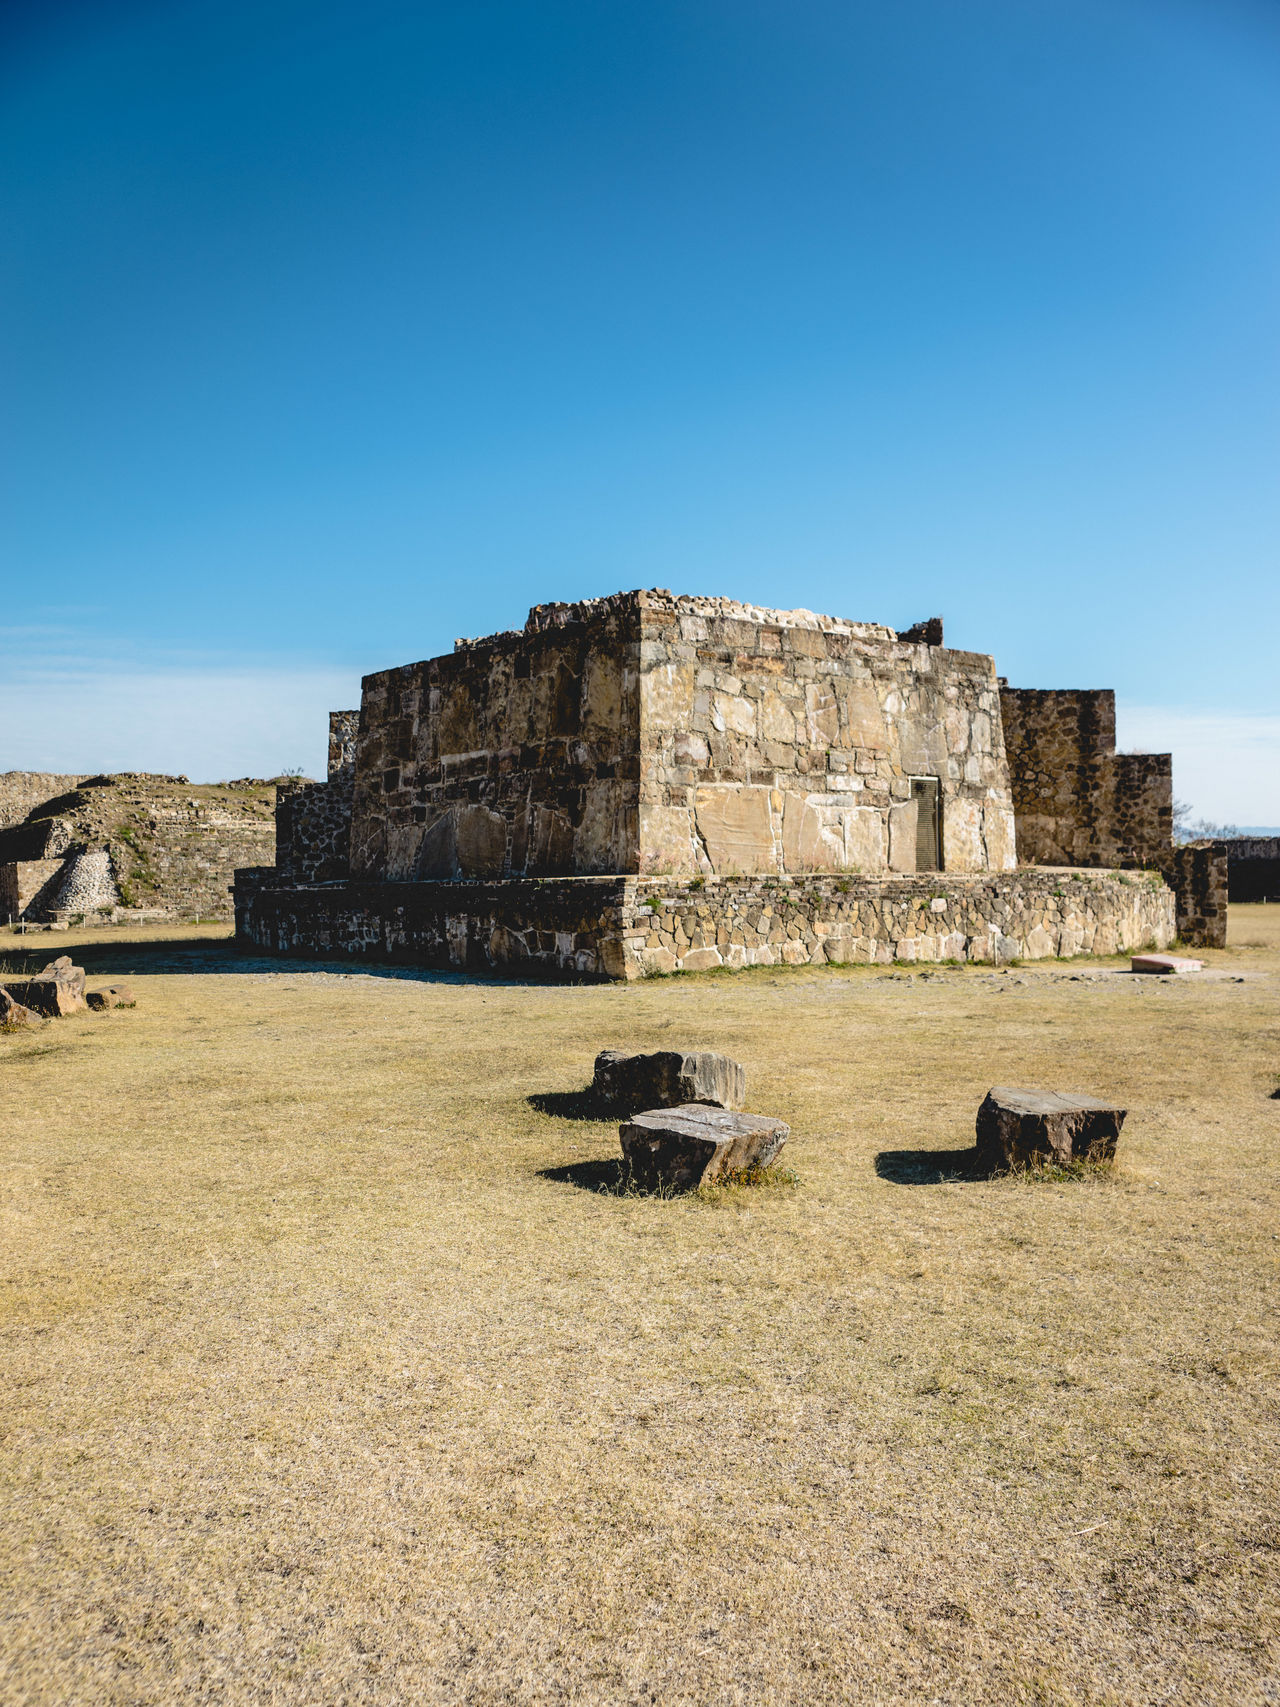 Ancient Ancient Ancient Architecture Ancient Civilization Ancient Ruins Archaeology Archeology Architecture Art Blue Clear Sky Cosmos Culture History Landscape_photography Mexico Mexico_maravilloso Monte Alban Nature Old Ruin Outdoors Prehispanic Pyramid Roman The Past Neighborhood Map